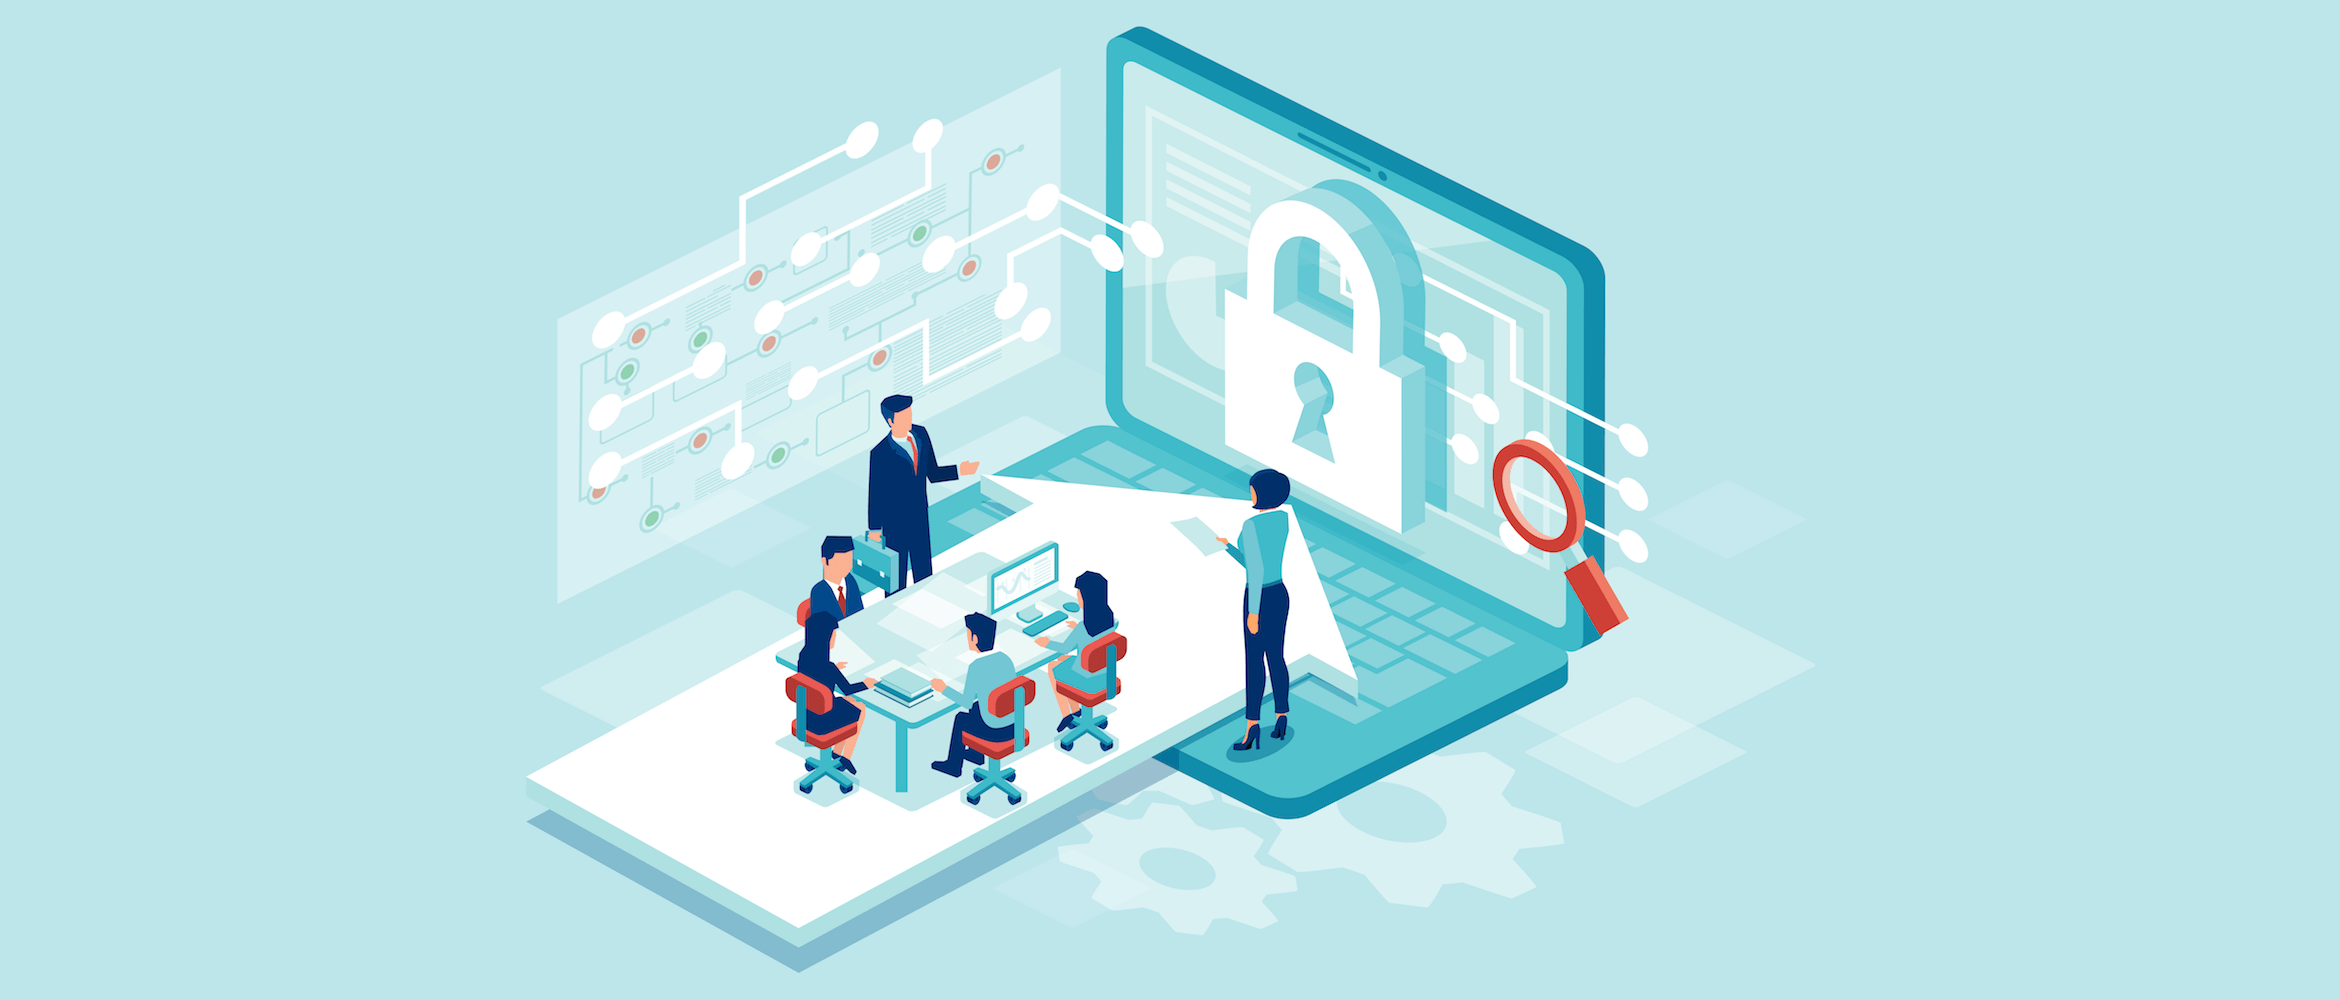 Illustration of a team working designing new software to protect data from cyberattacks